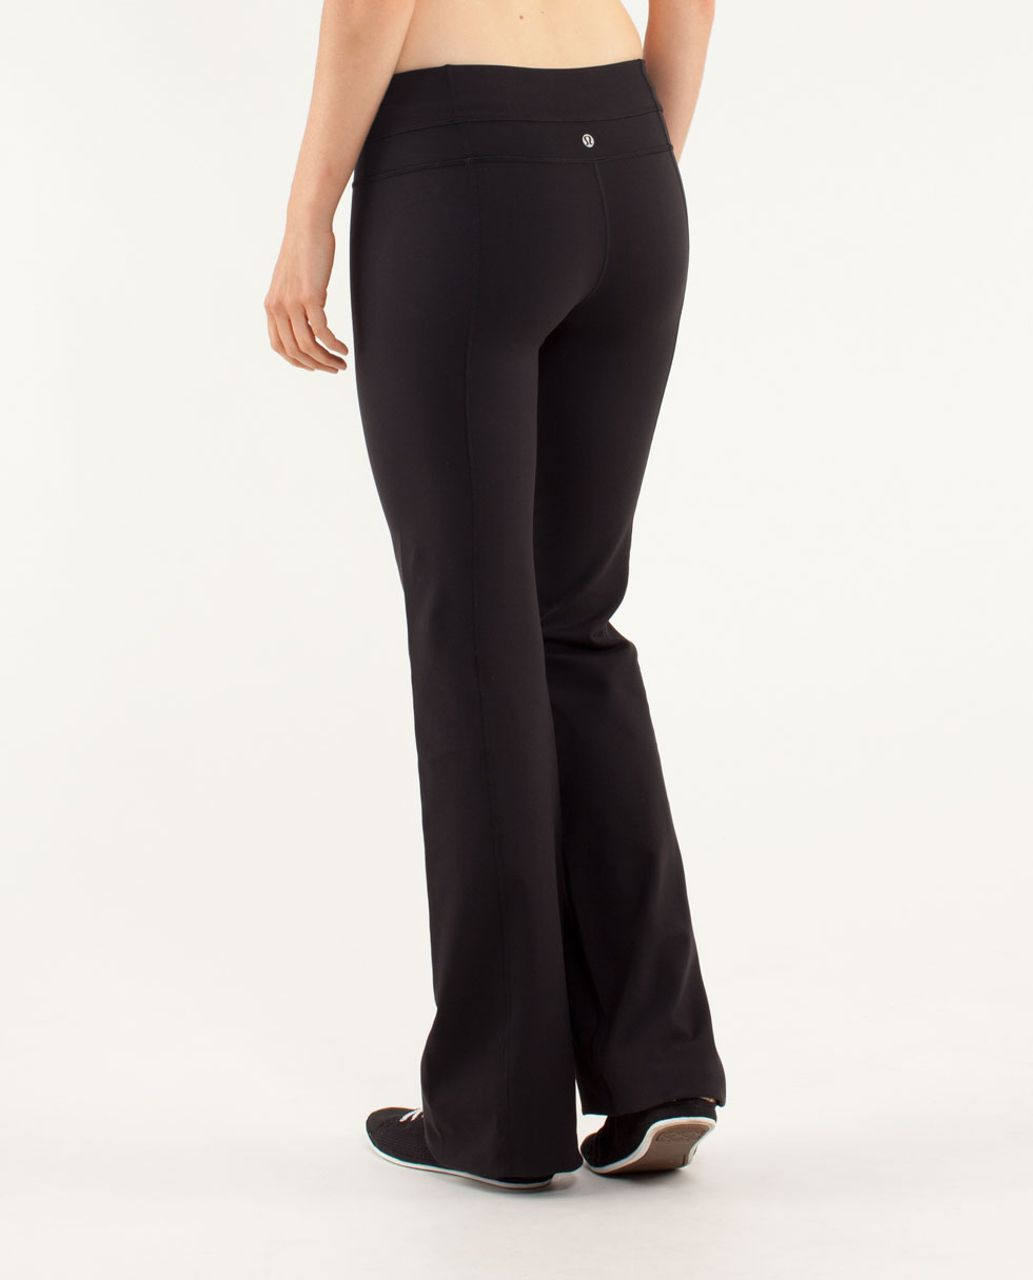 Lululemon Groove Pant *Slim (Regular) - Black